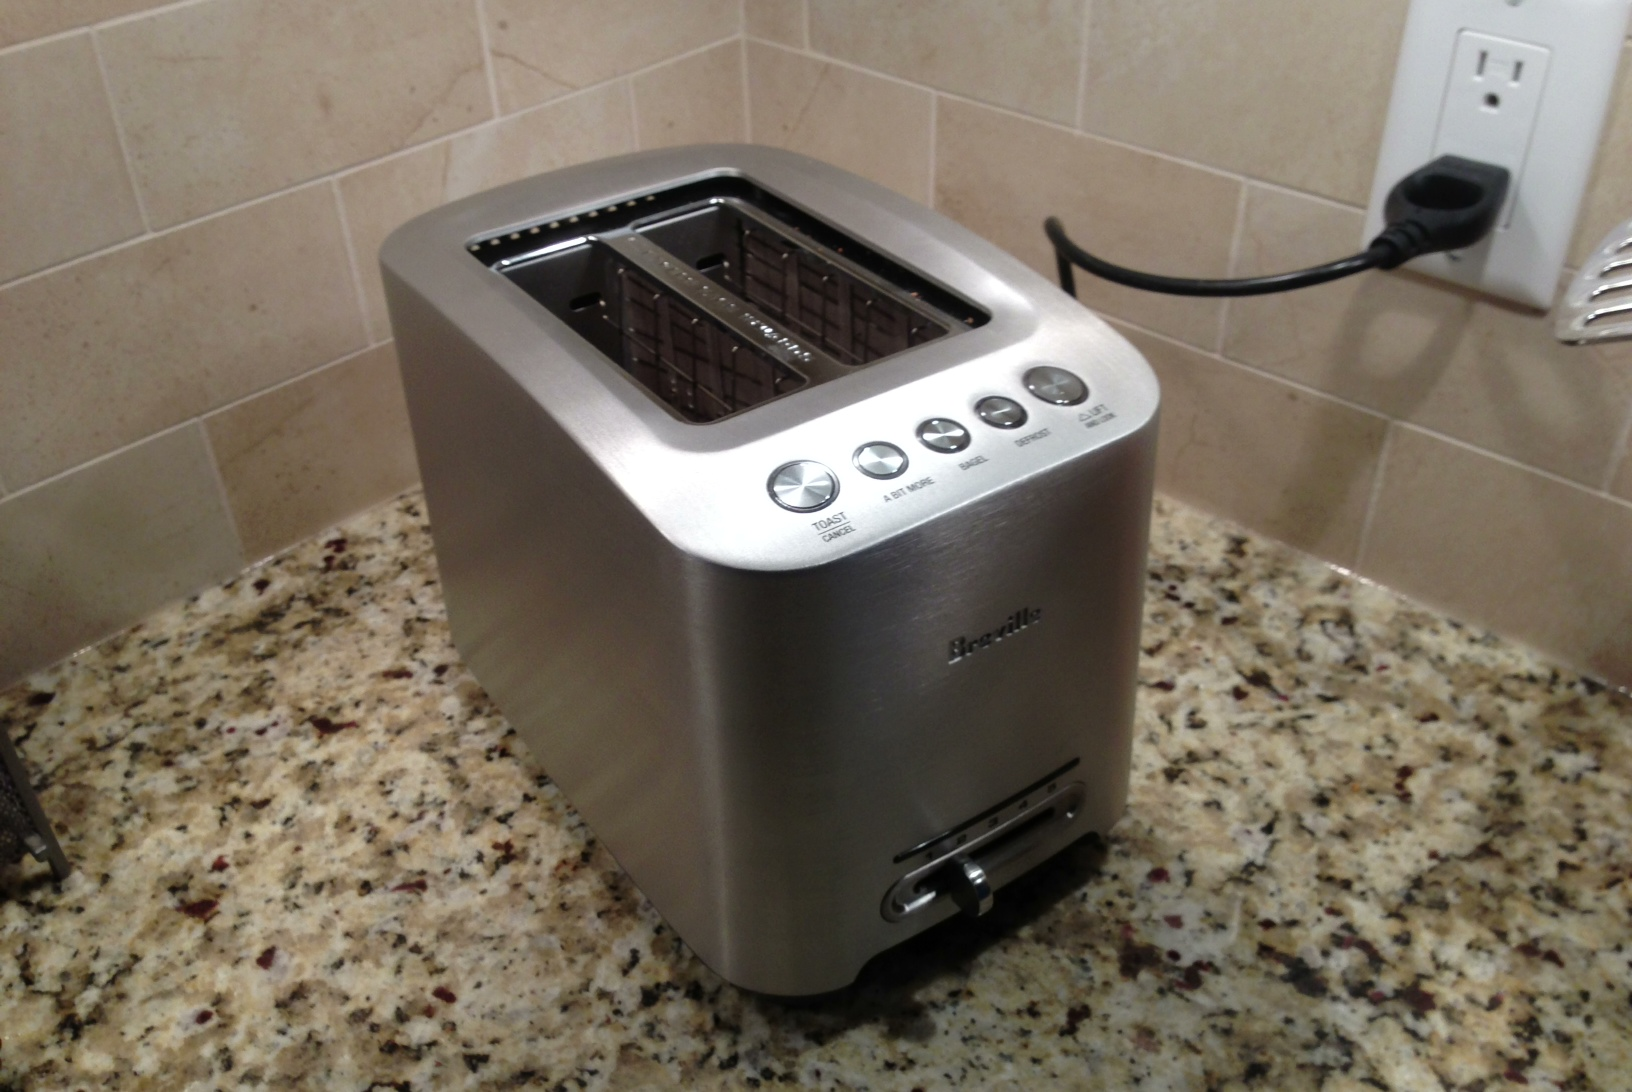 original - Un grille-pain intelligent par Breville [Test]